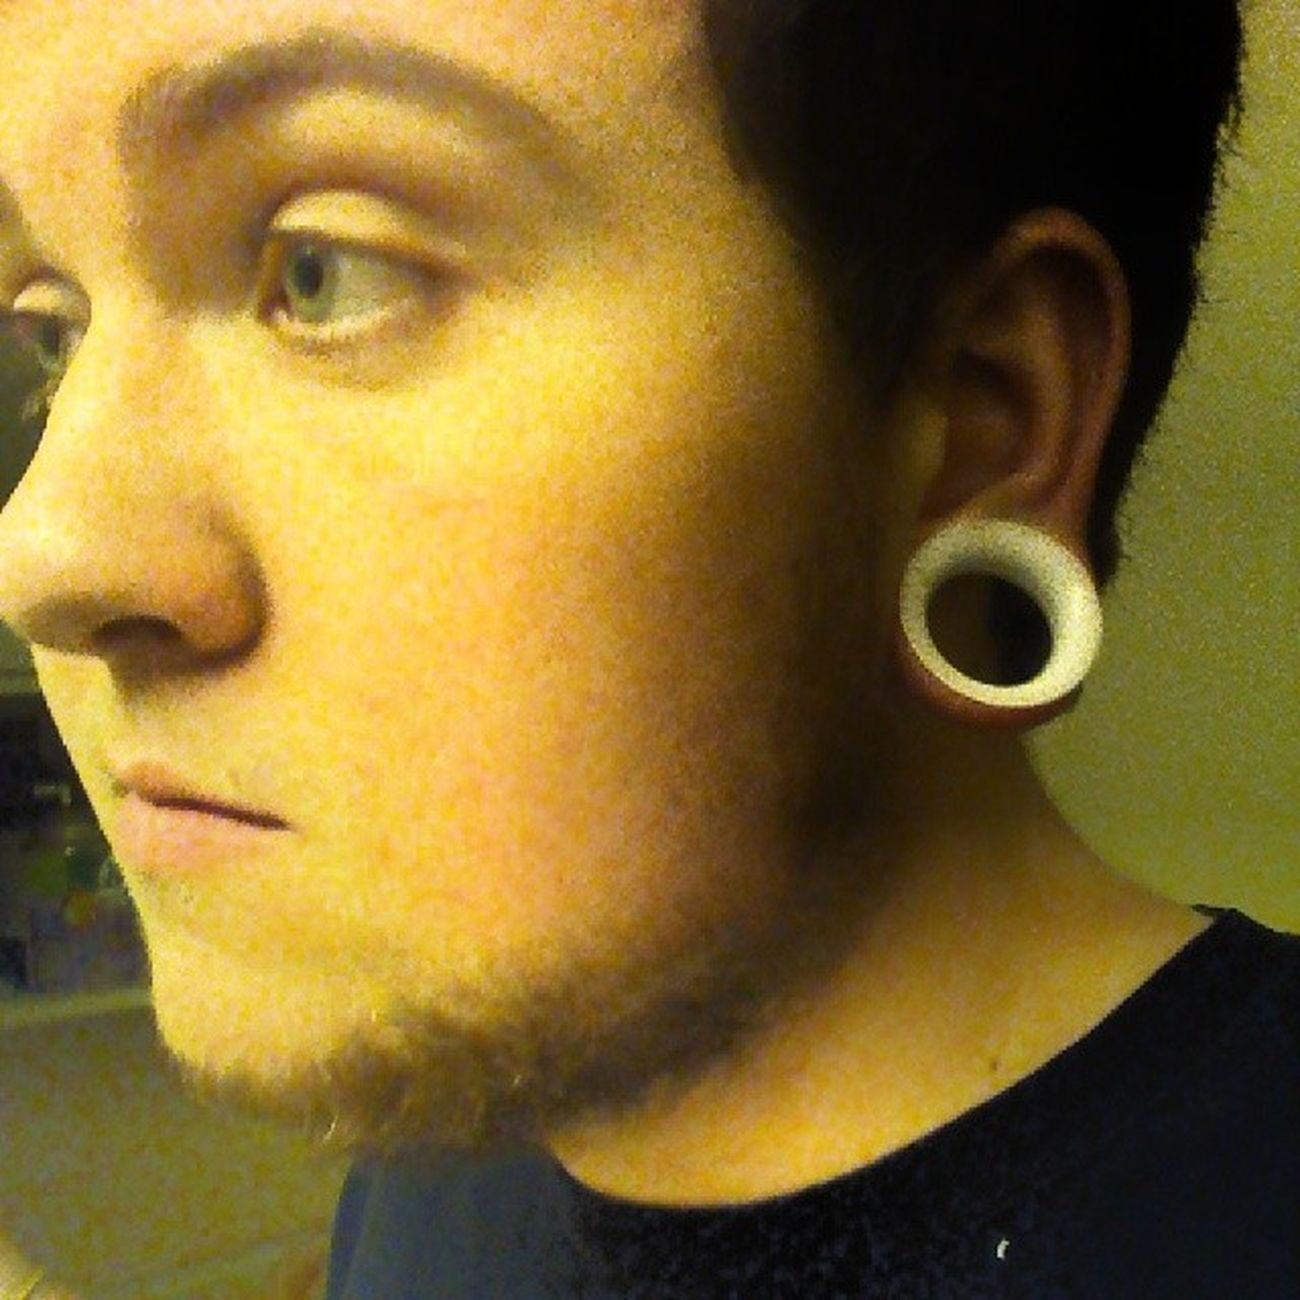 Got my new ear skins skins today. Holy shit comfortable. And they .make my ears look ten times bigger! Earskins Whitetunnels Tunnels Guyswithstreatchedlobes bodymods TheThingsWeDoToMakeOurselvesBeautiful @all_bodymodification